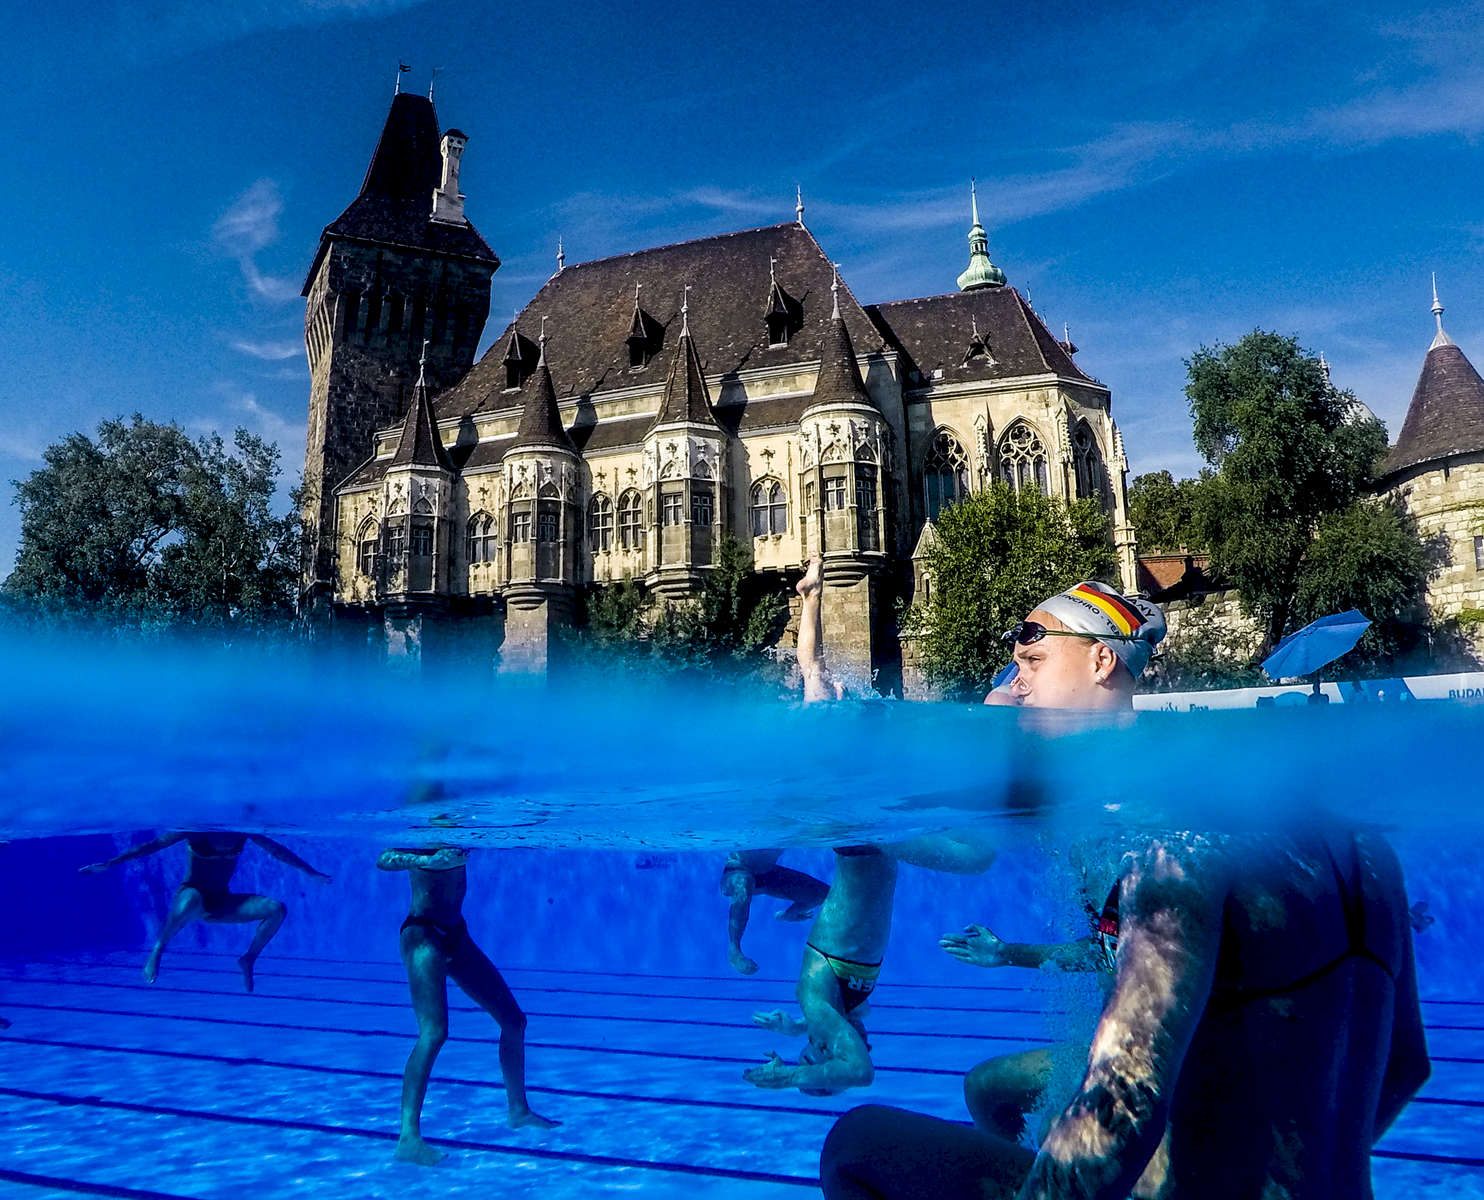 The German team practices during the FINA World championships in Budapest, Hungary on July 20, 2017.